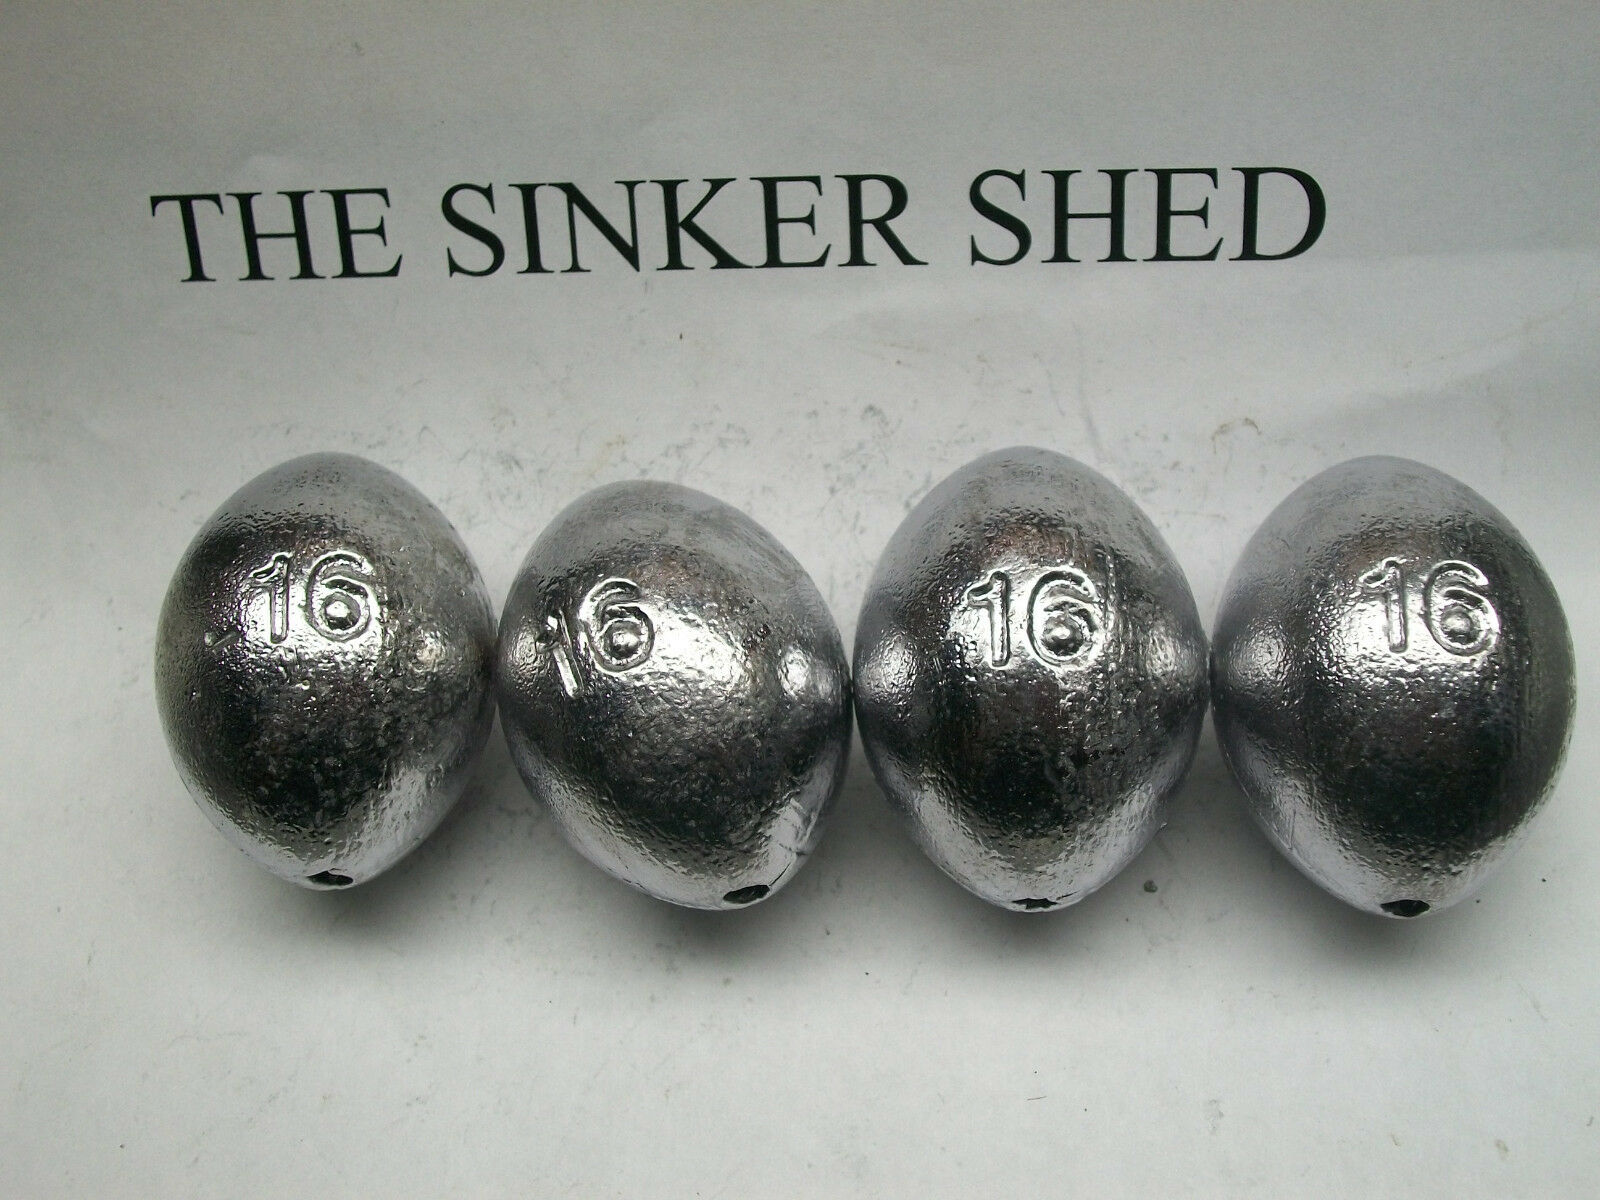 16 oz egg sinkers   decoy weights  - quantity of 6 12 25 50 62 - FREE SHIPPING